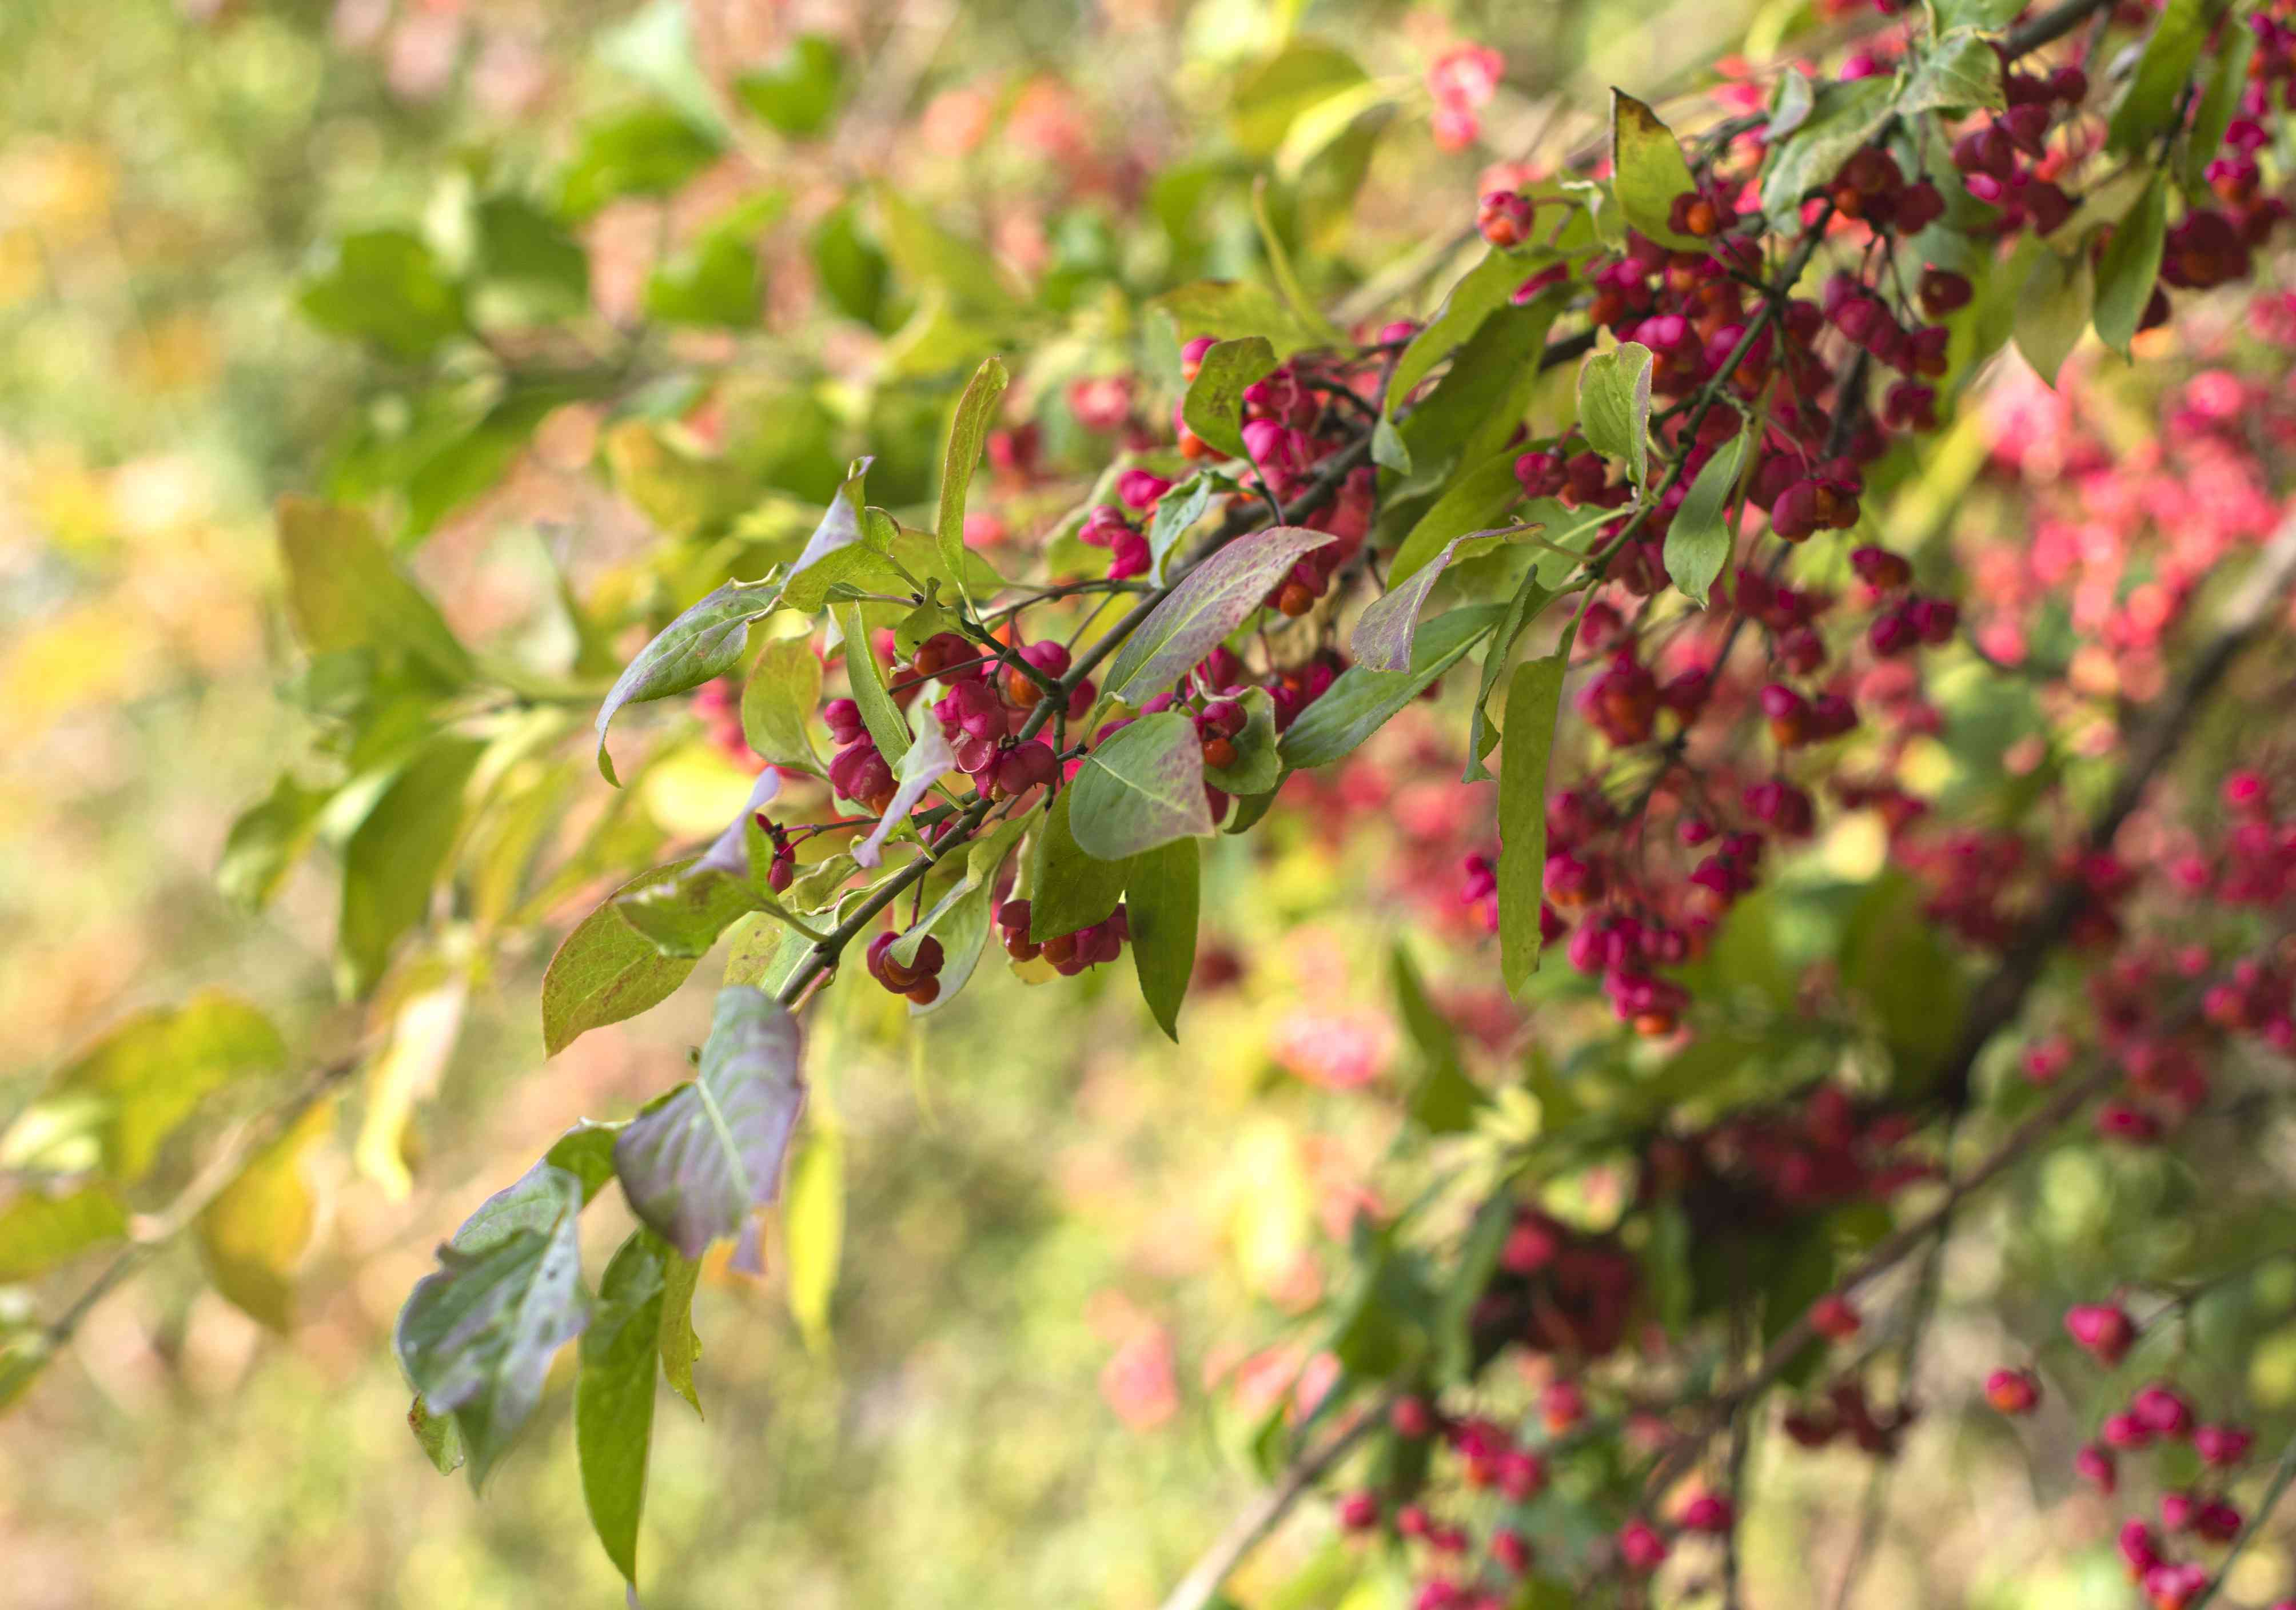 European spindle tree branches with fuchsia colored berries